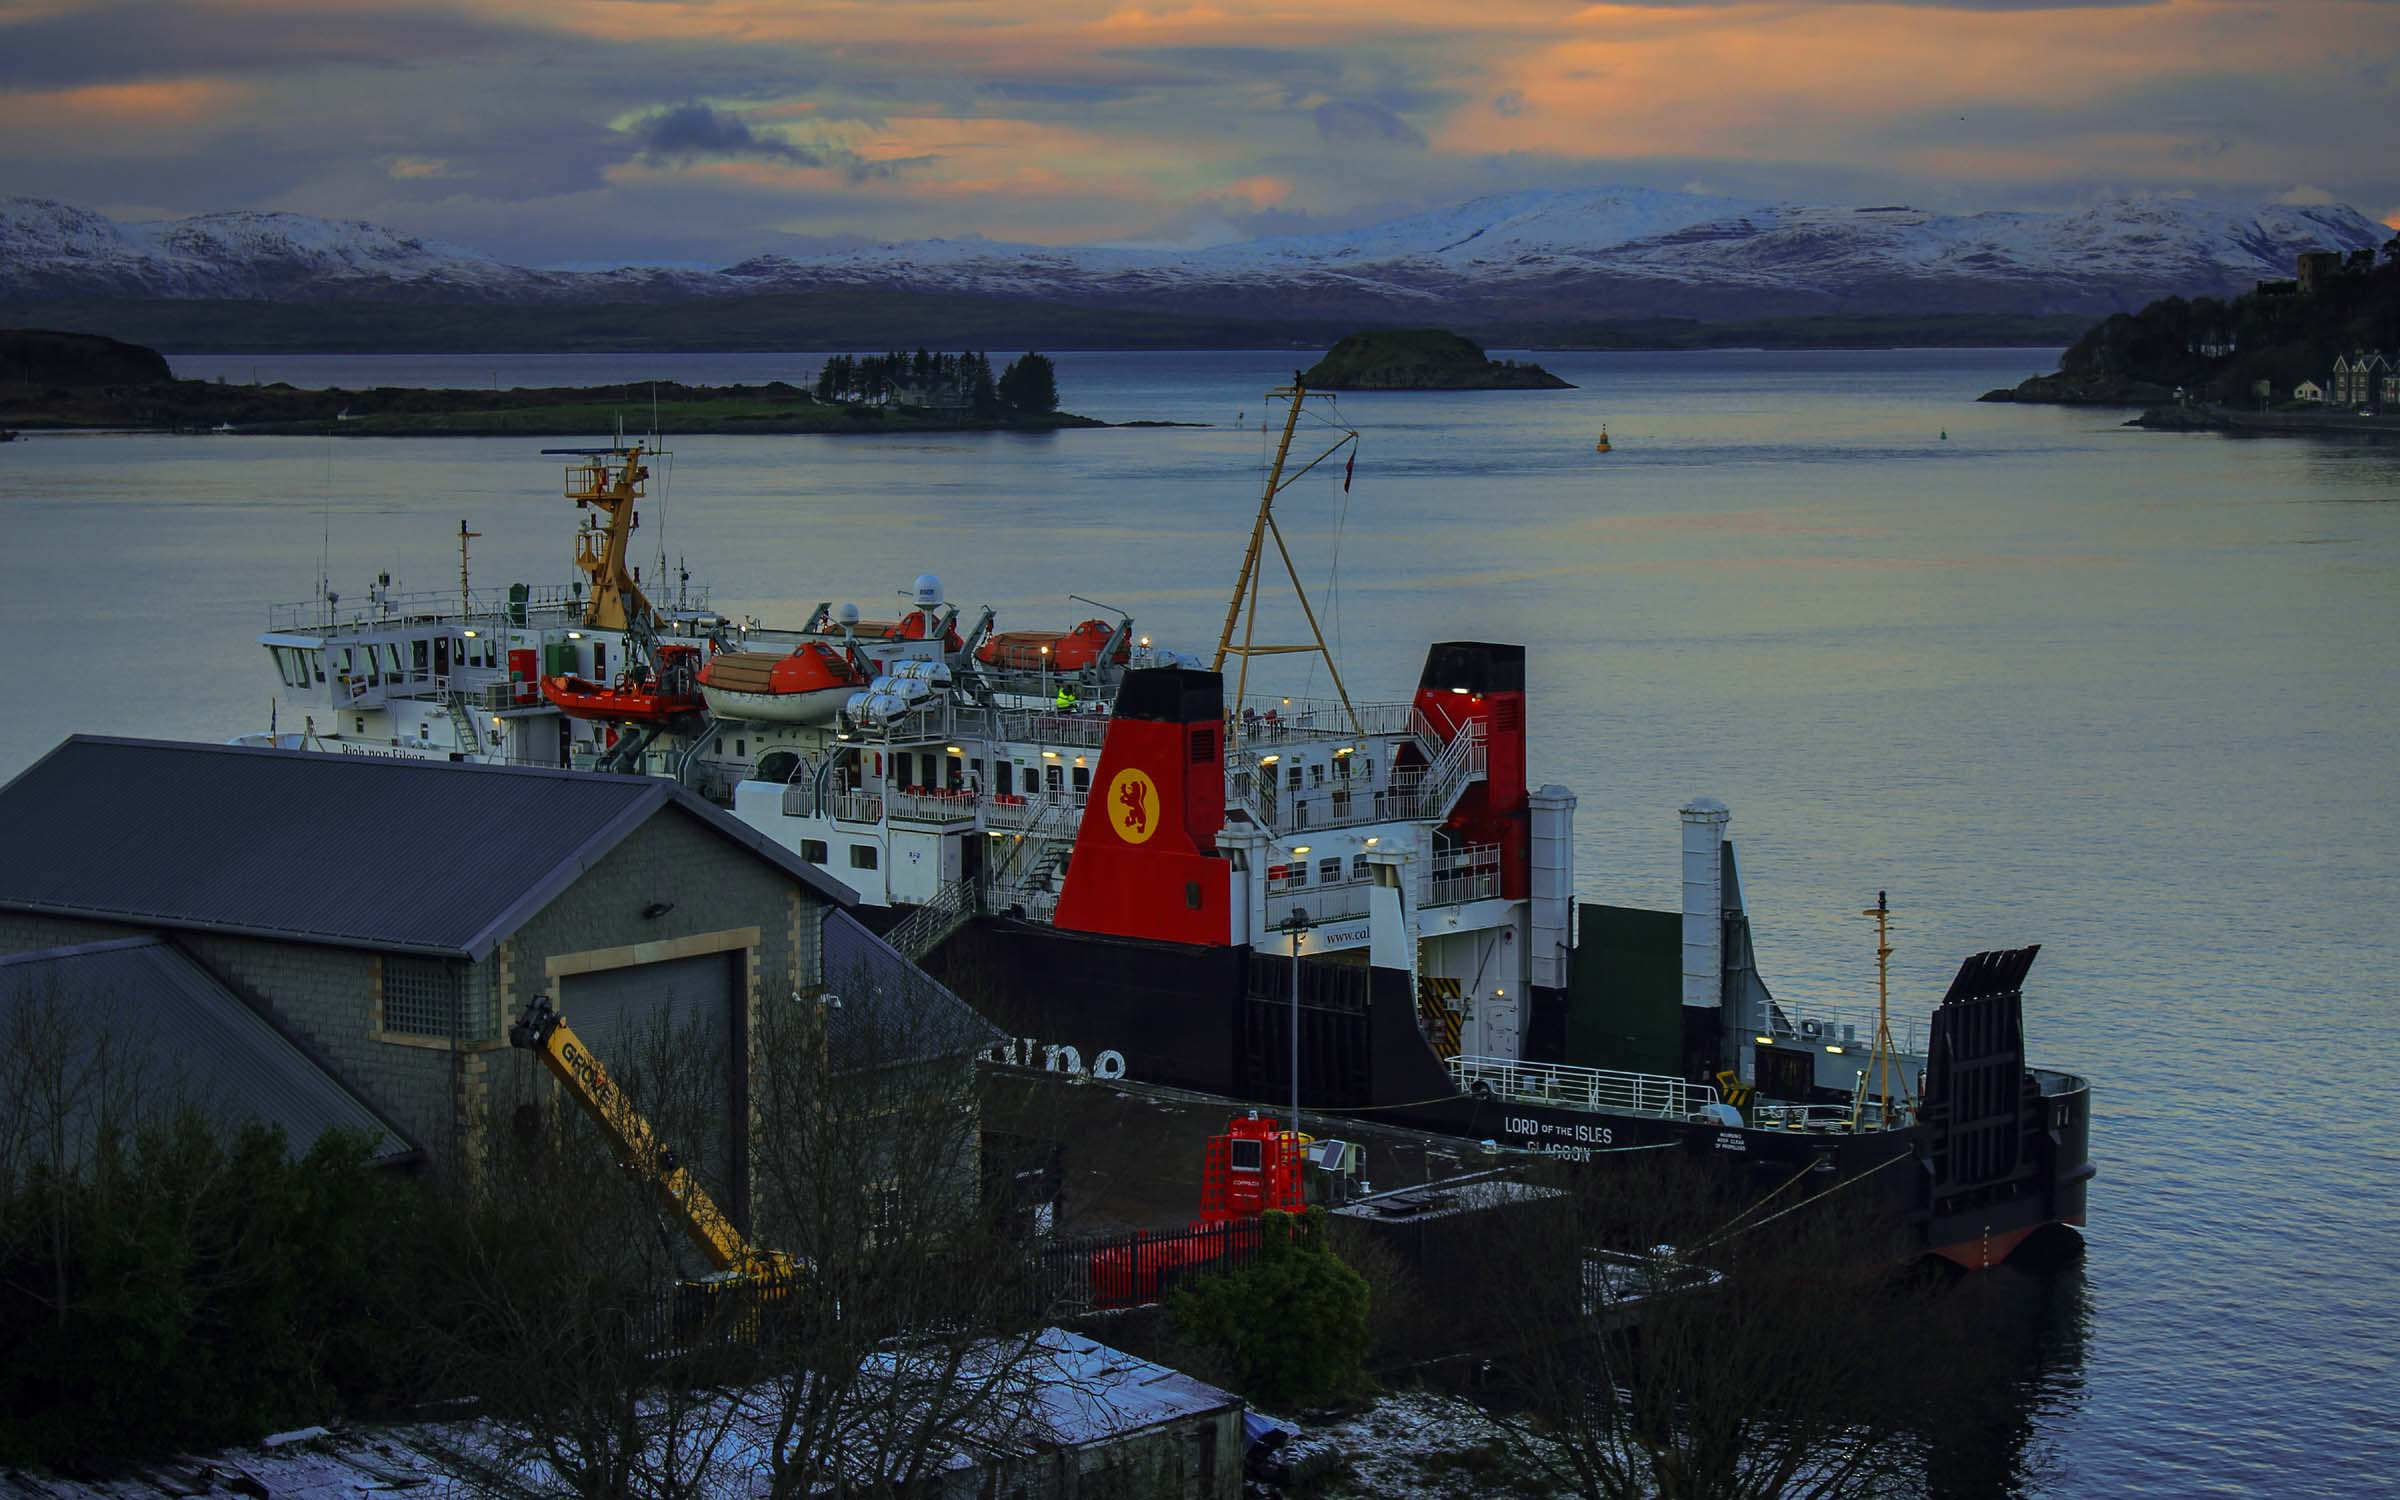 Lord of the Isles at Oban's South Pier (Ships of CalMac)